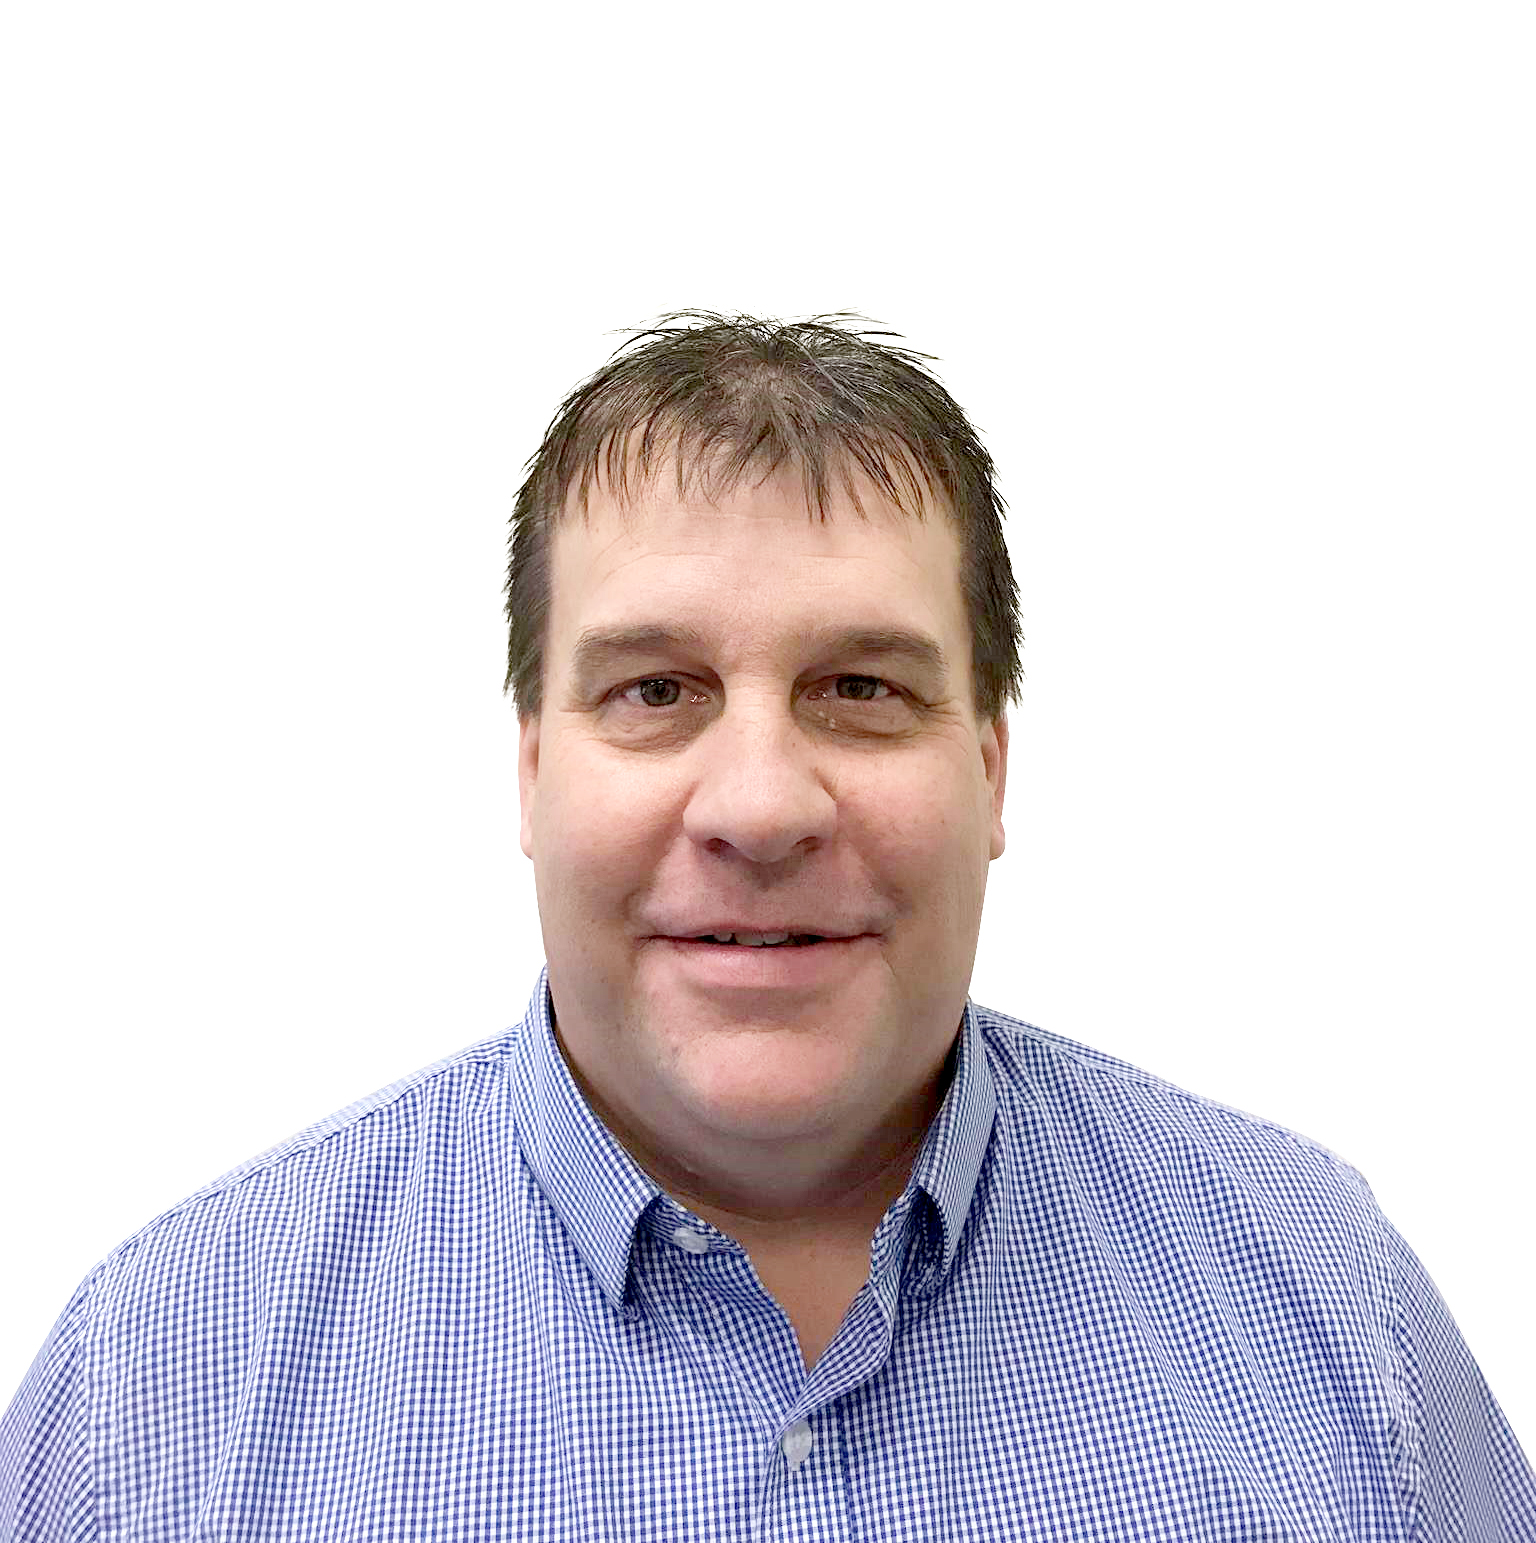 Avro GSE Operations Manager - Trent Diederich